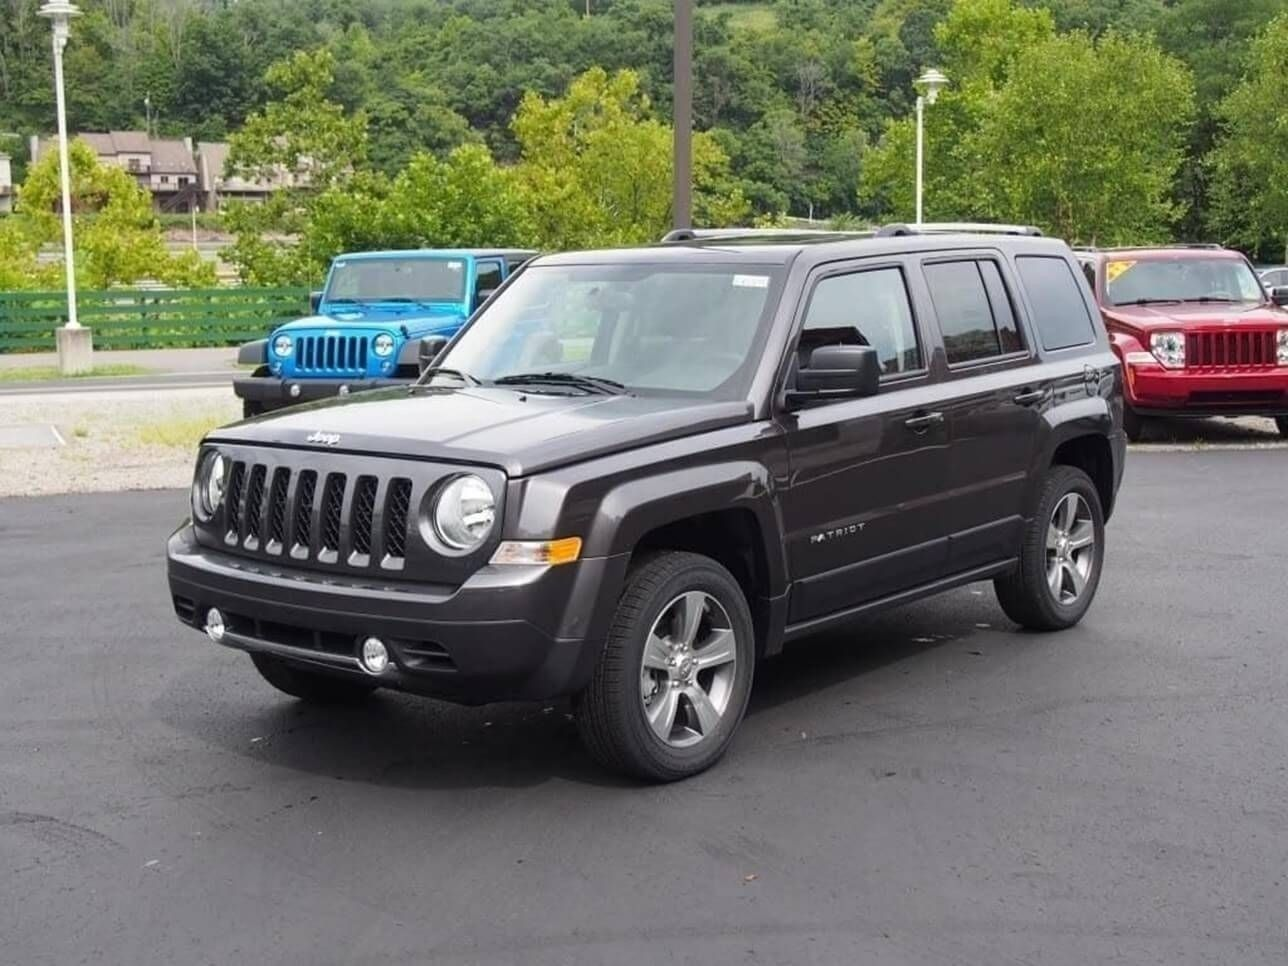 Jeep Patriot 2019 Interior, Exterior and Review Jeep